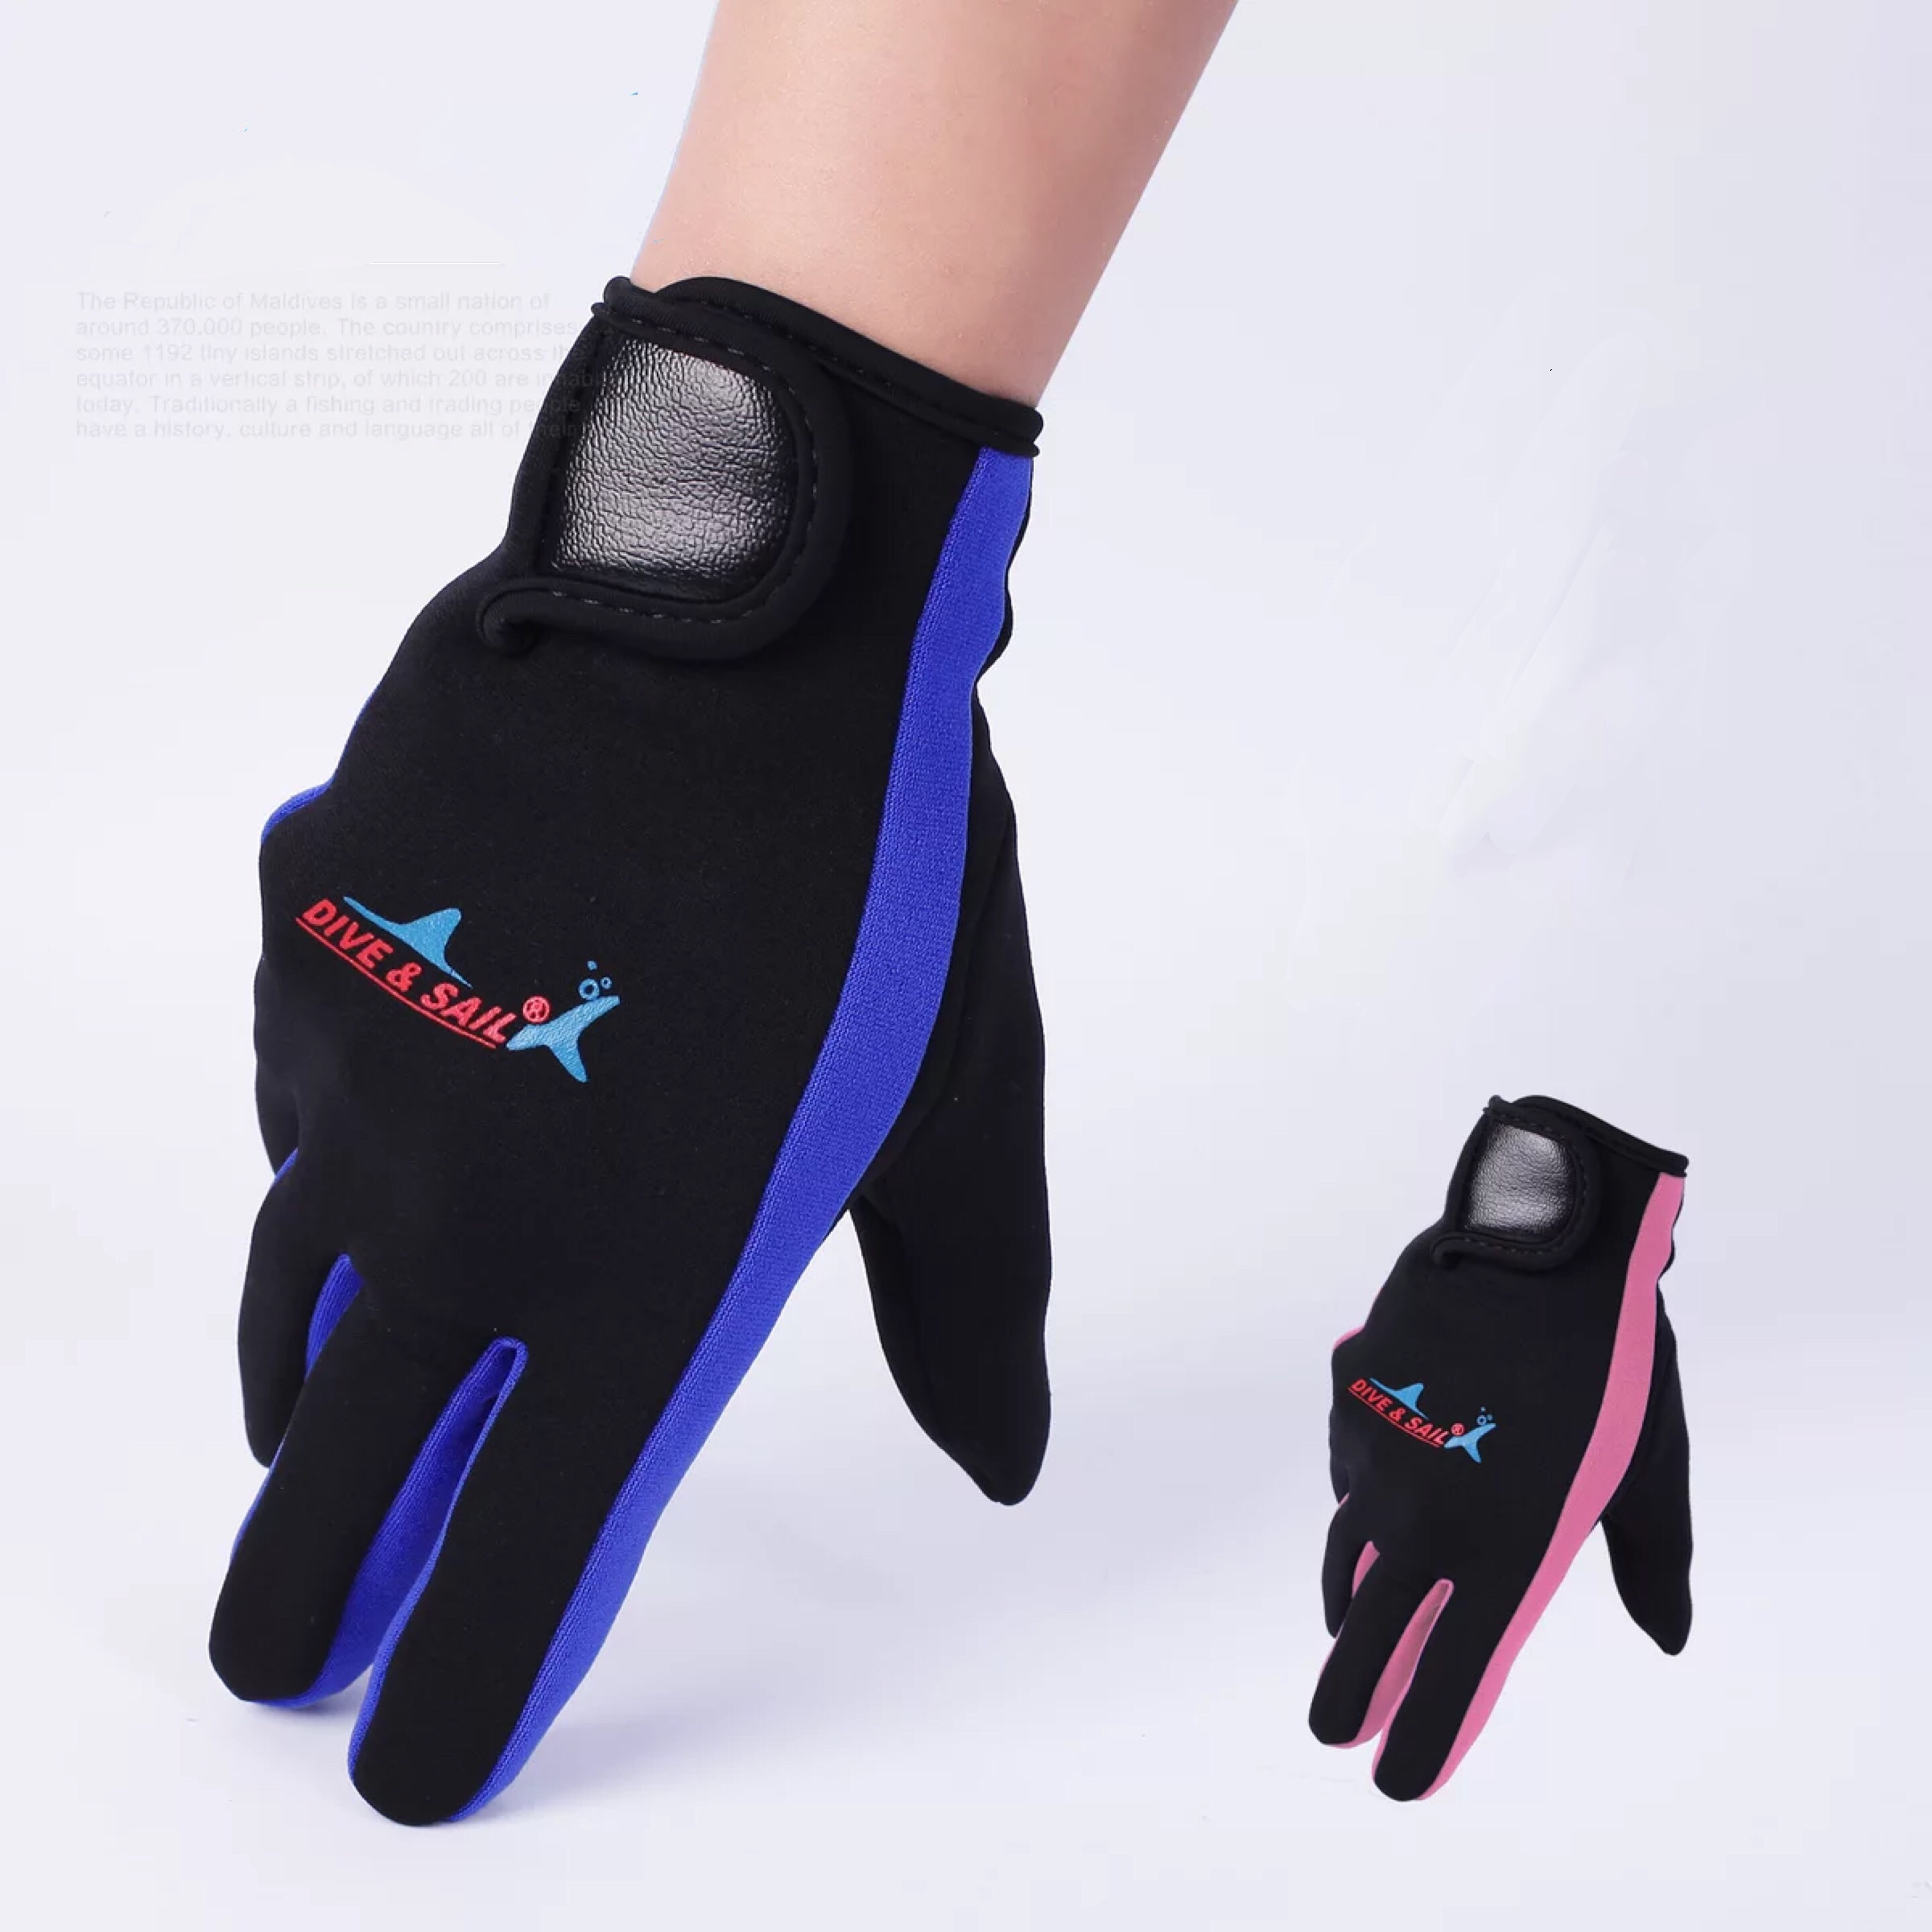 Women Men Swimming & Diving Gloves 1.5mm Neoprene Swimming Diving Gloves Anti-slip Warm Swimming Snorkeling Surfing Gloves